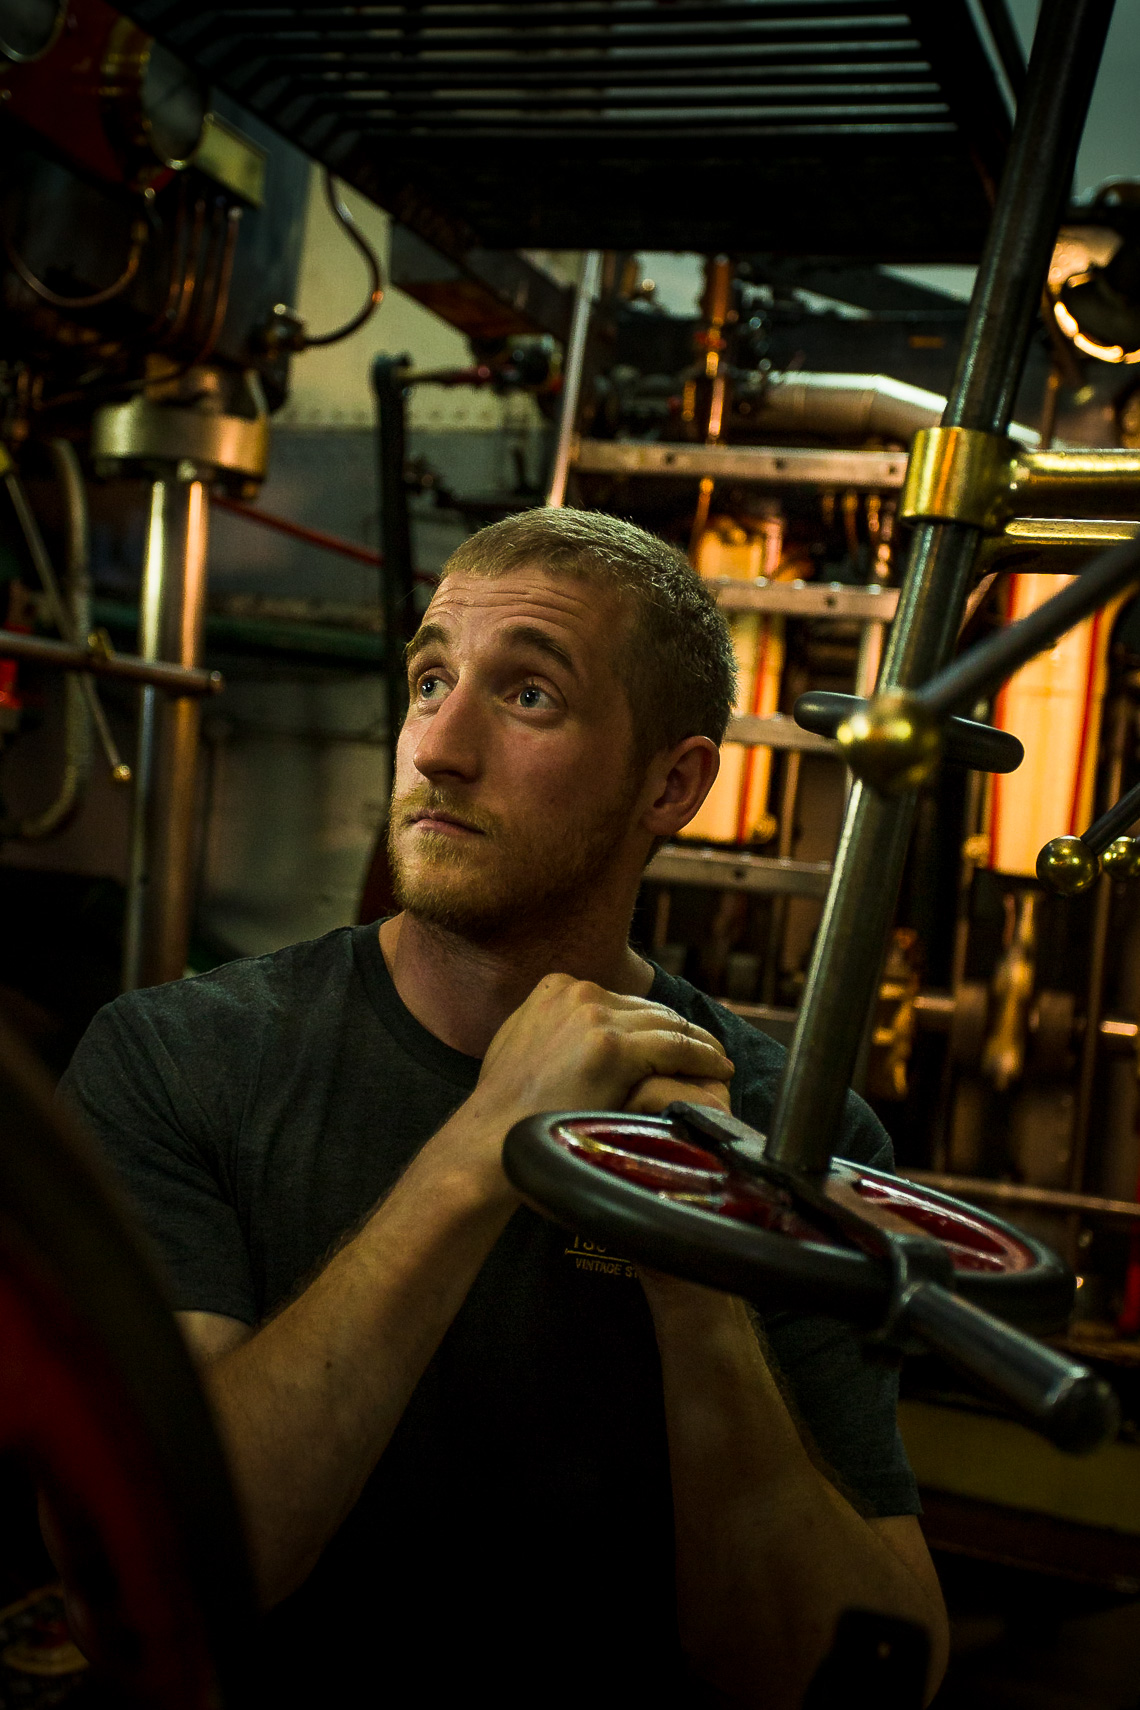 Engineer aboard steam ship takes a breather by Paul Green Photography